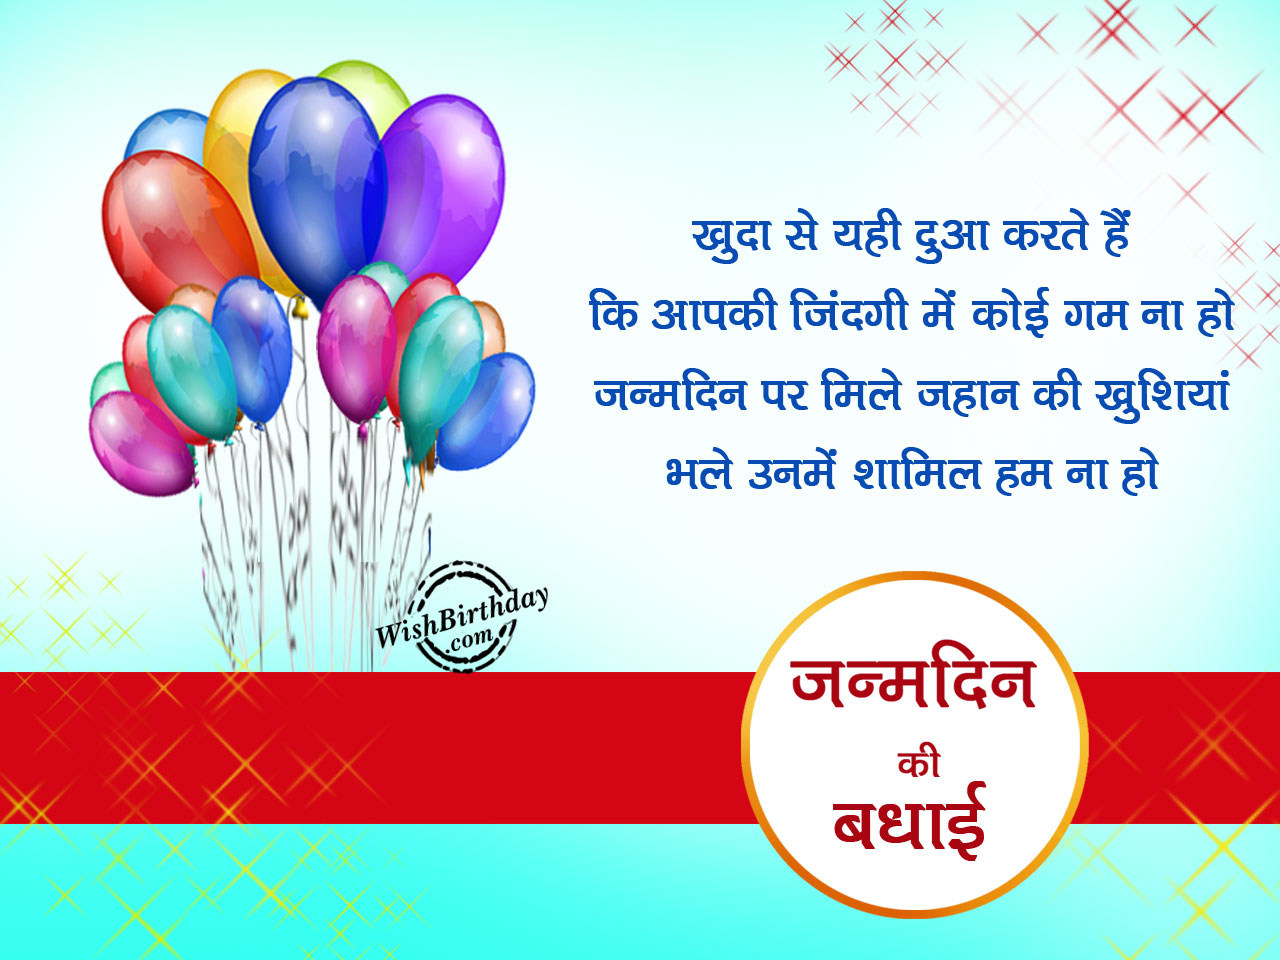 Birthday wishes for friends images in hindi